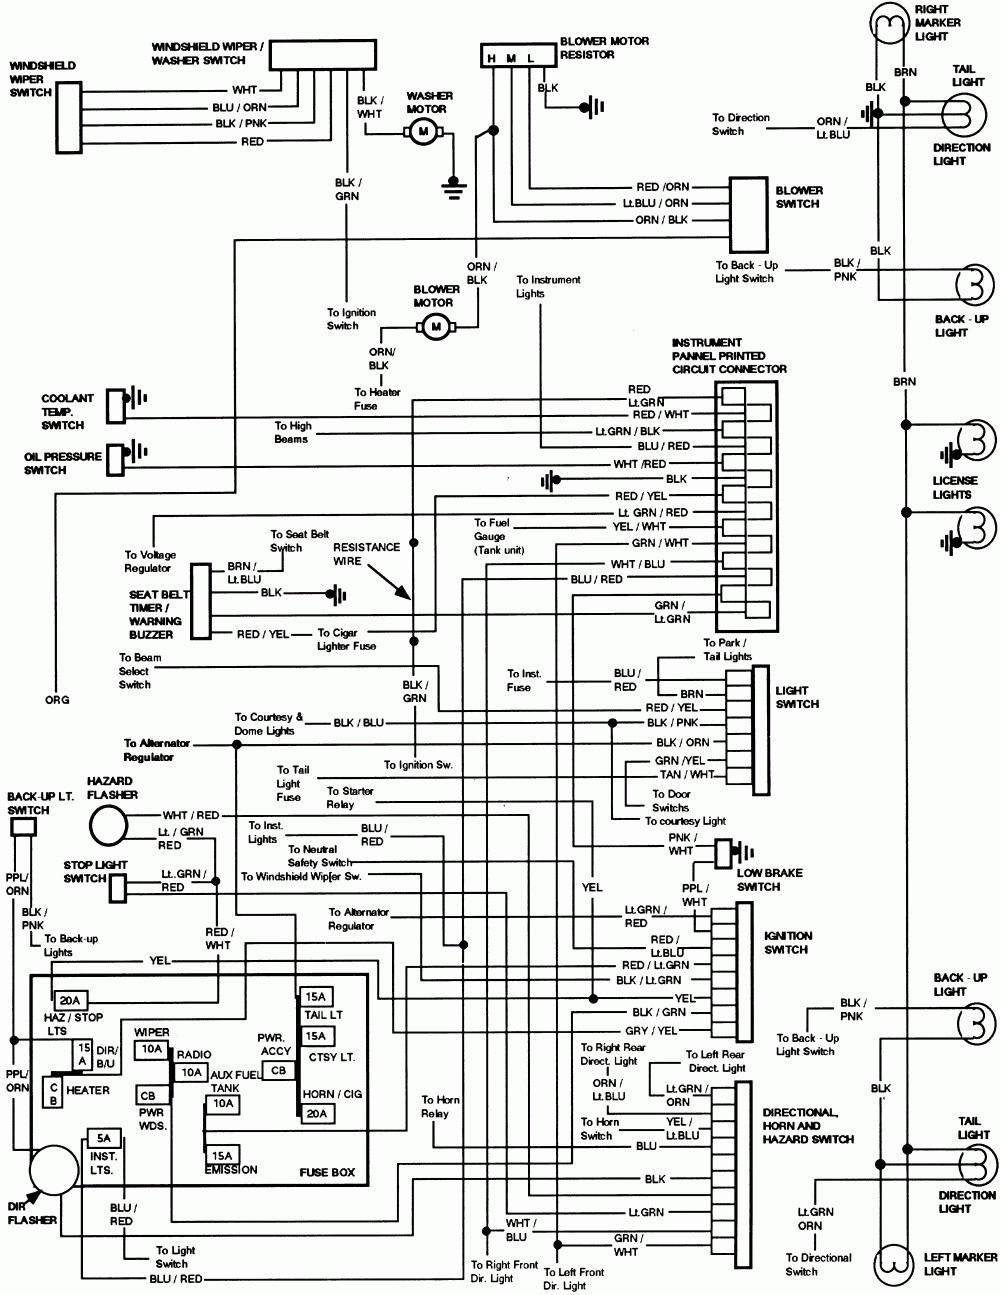 hight resolution of ford f250 wiring diagrams wiring diagram article review 89 ford f250 radio wiring diagram 89 f250